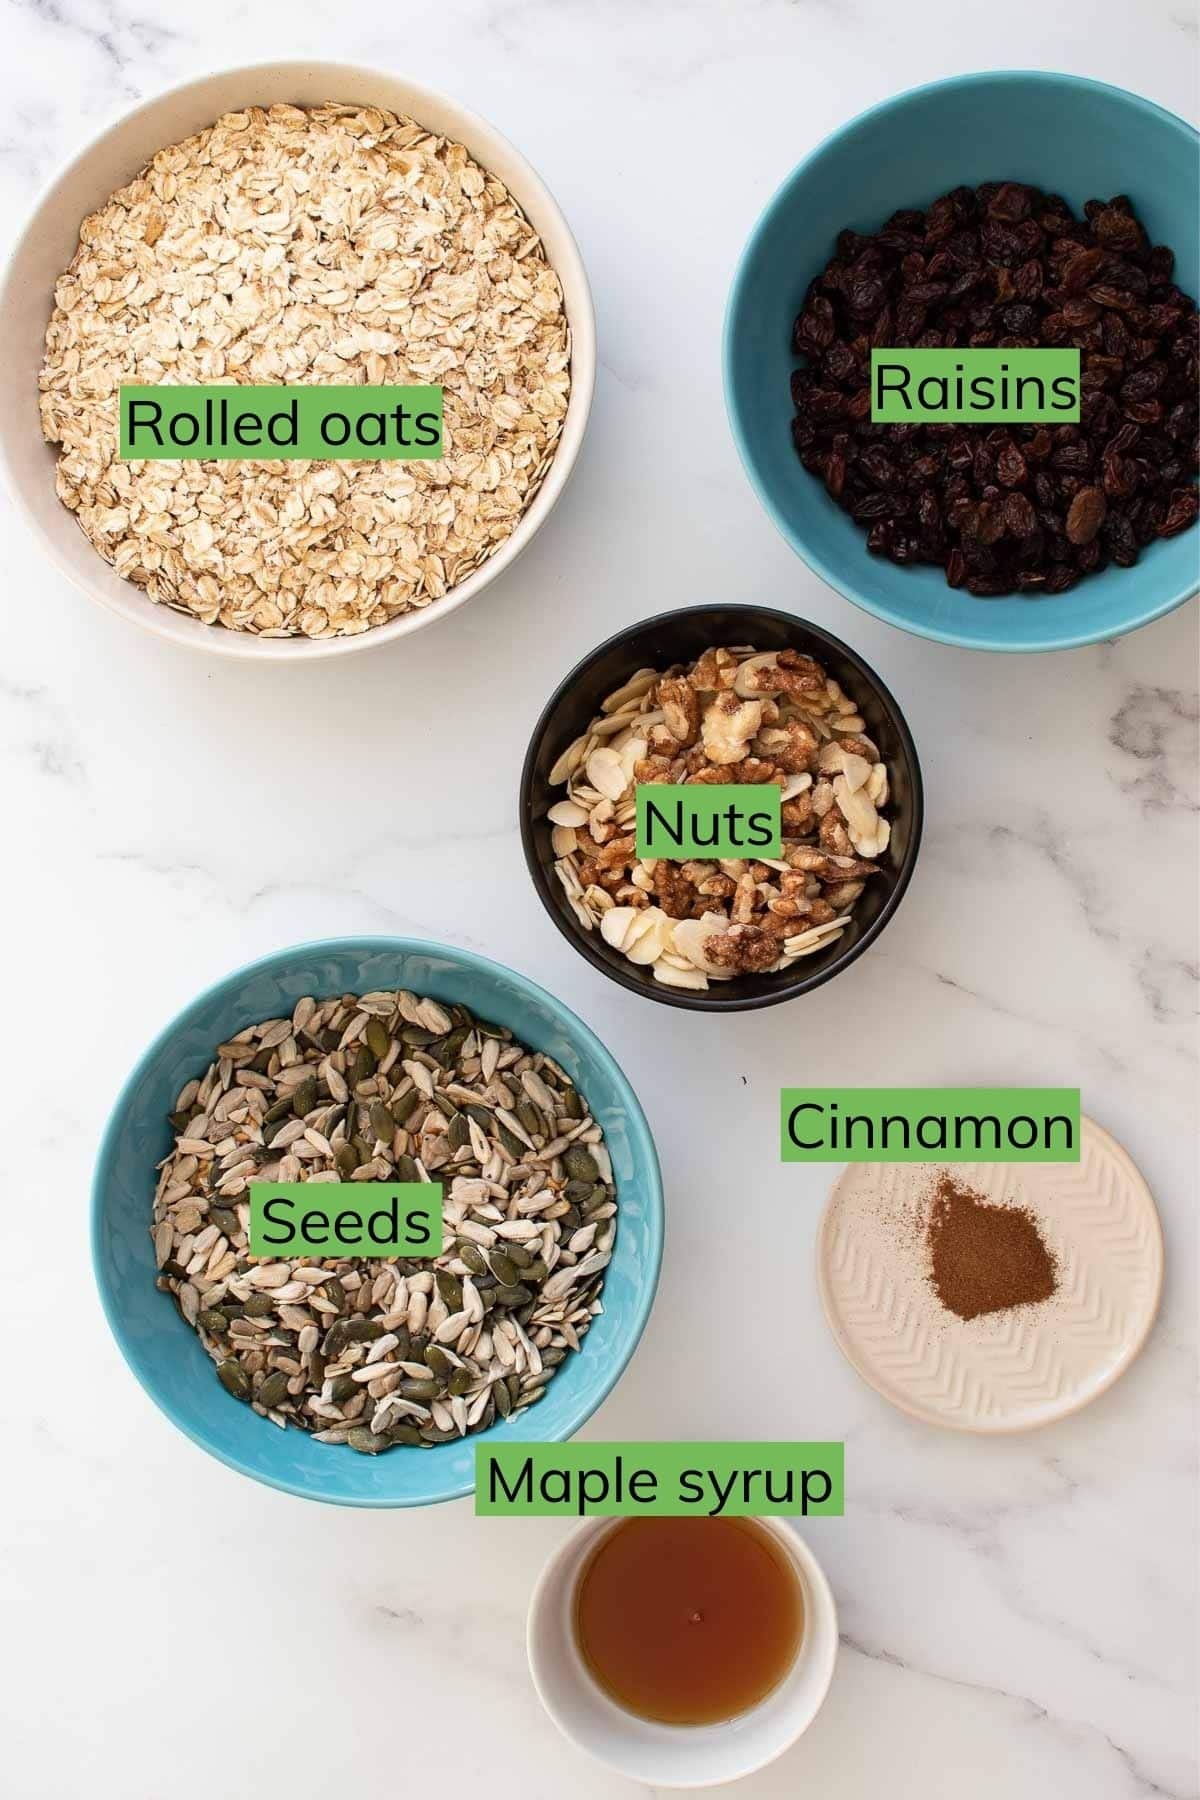 The ingredients for Toasted Muesli laid out on a table.